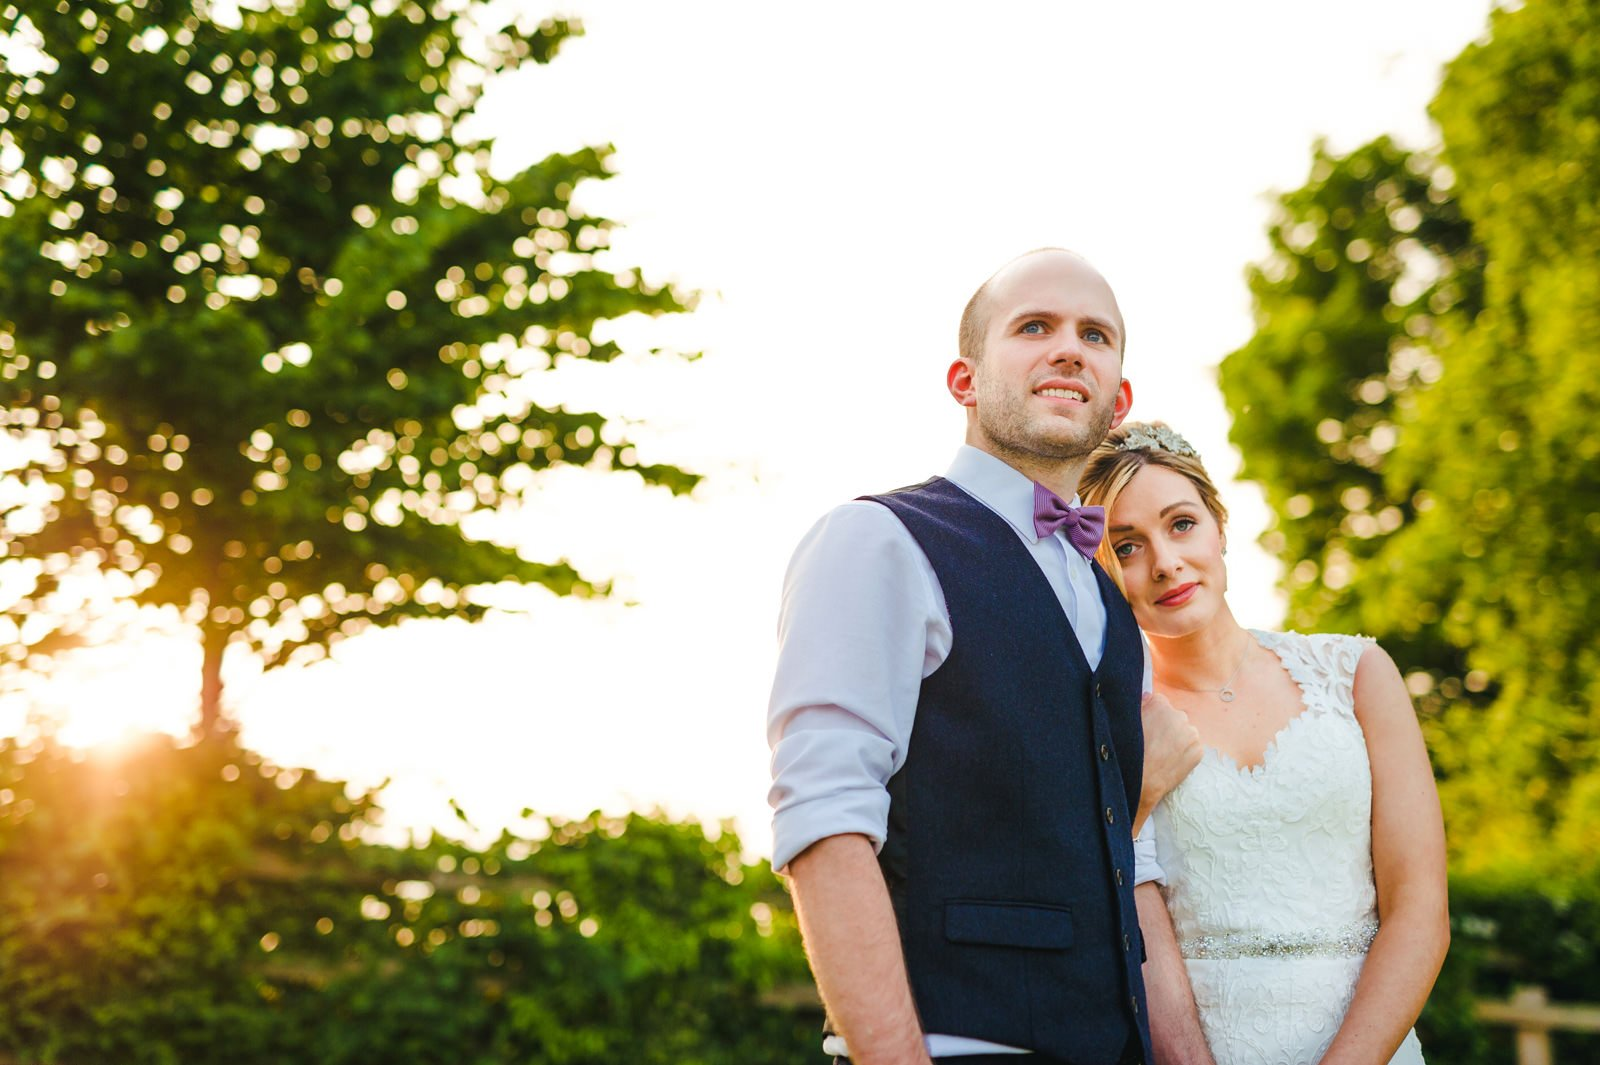 millers of netley wedding 93 - Millers Of Netley wedding, Dorrington, Shrewsbury | Emma + Ben